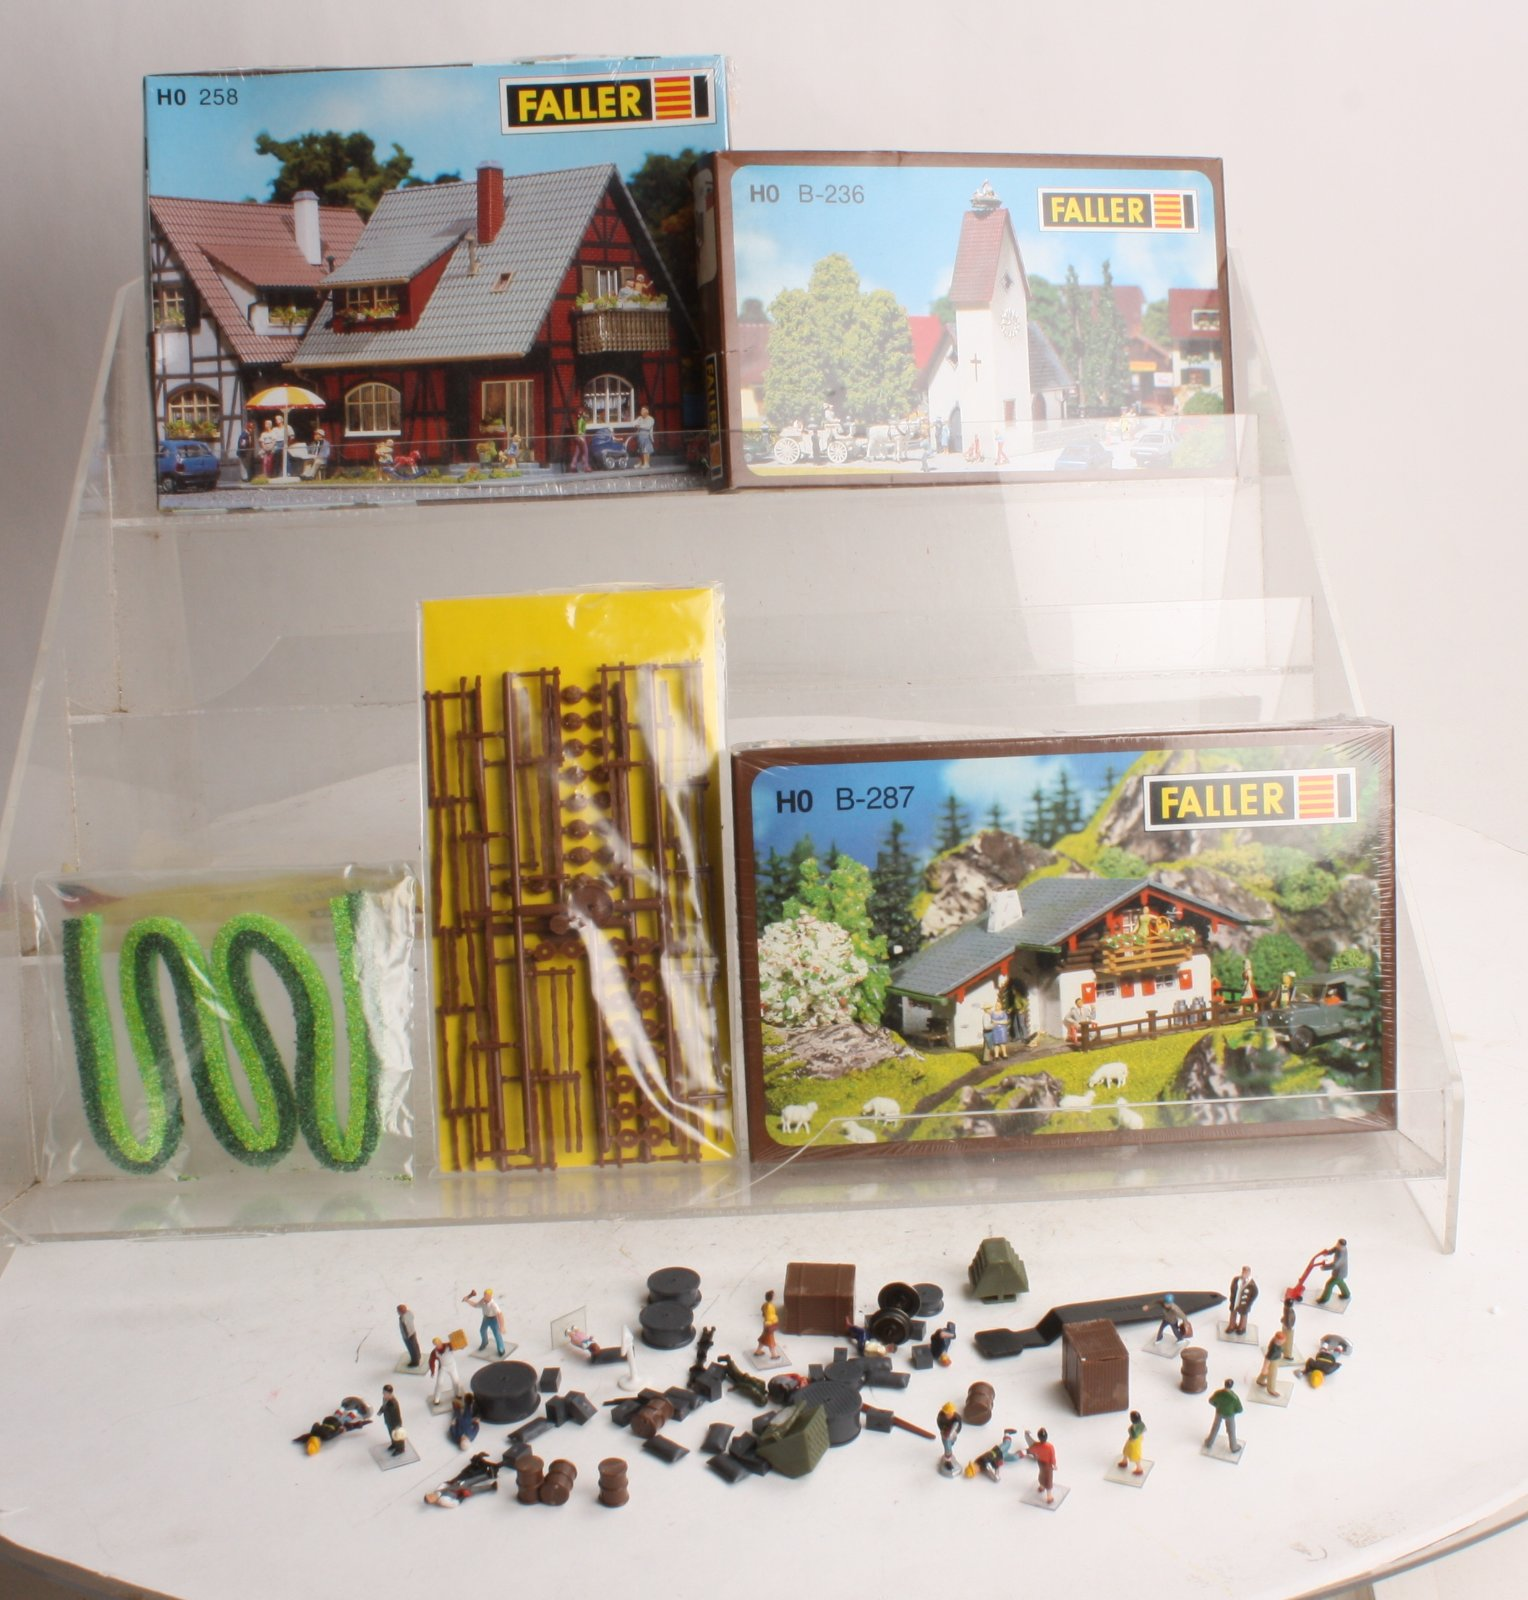 Buy Faller & Noch HO Scale Buildings, Trees, Figures & Accessories